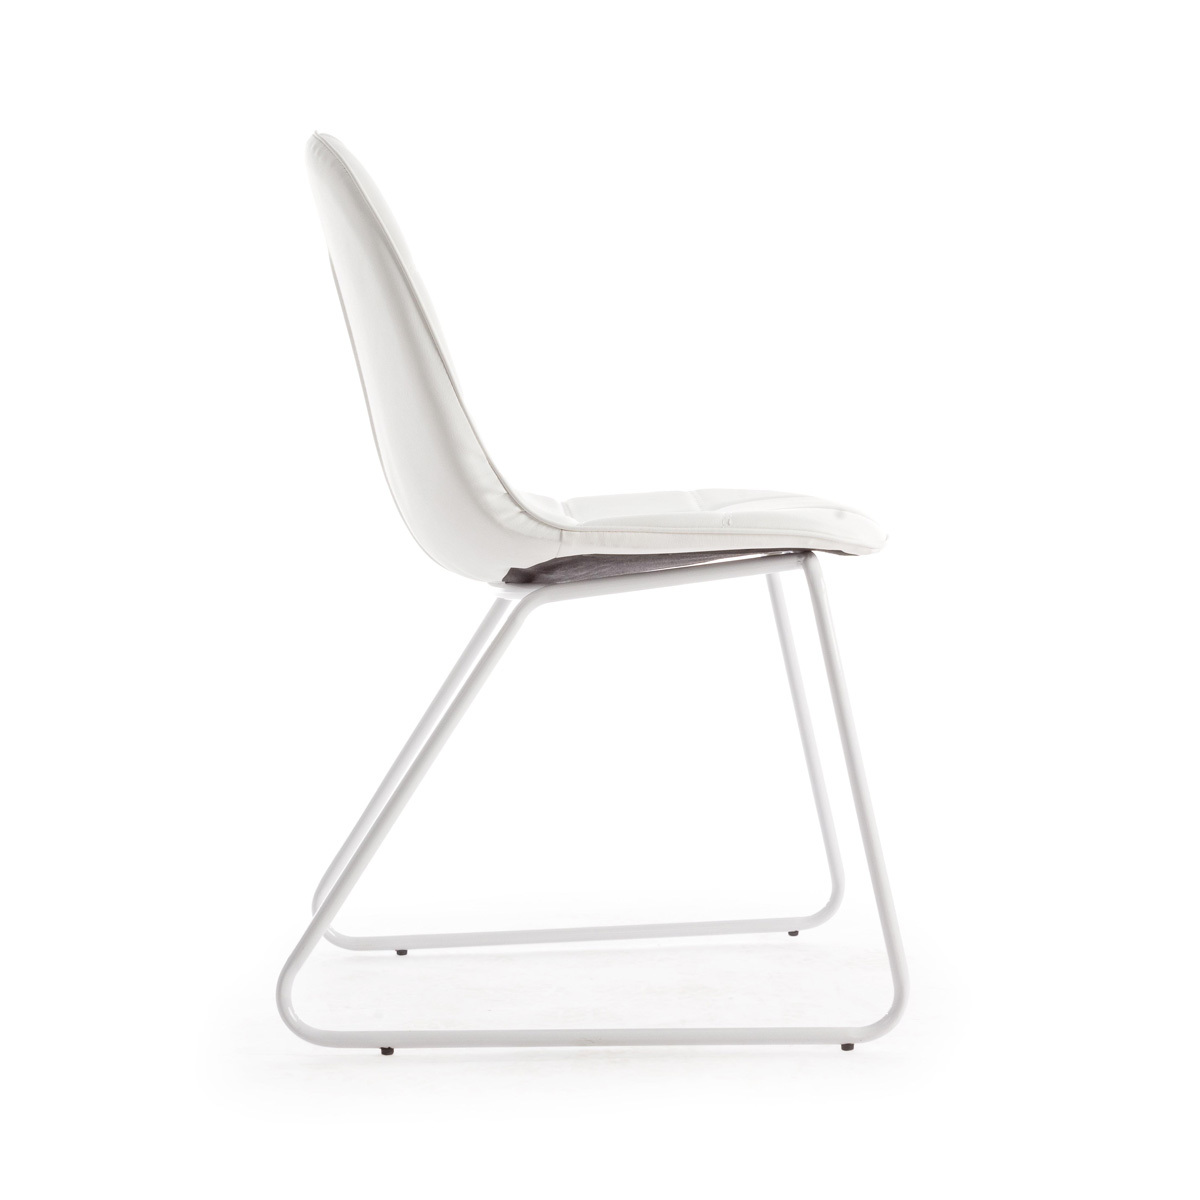 Photos 2: Bizzotto Chair in metal and eco-leather - white 0731653